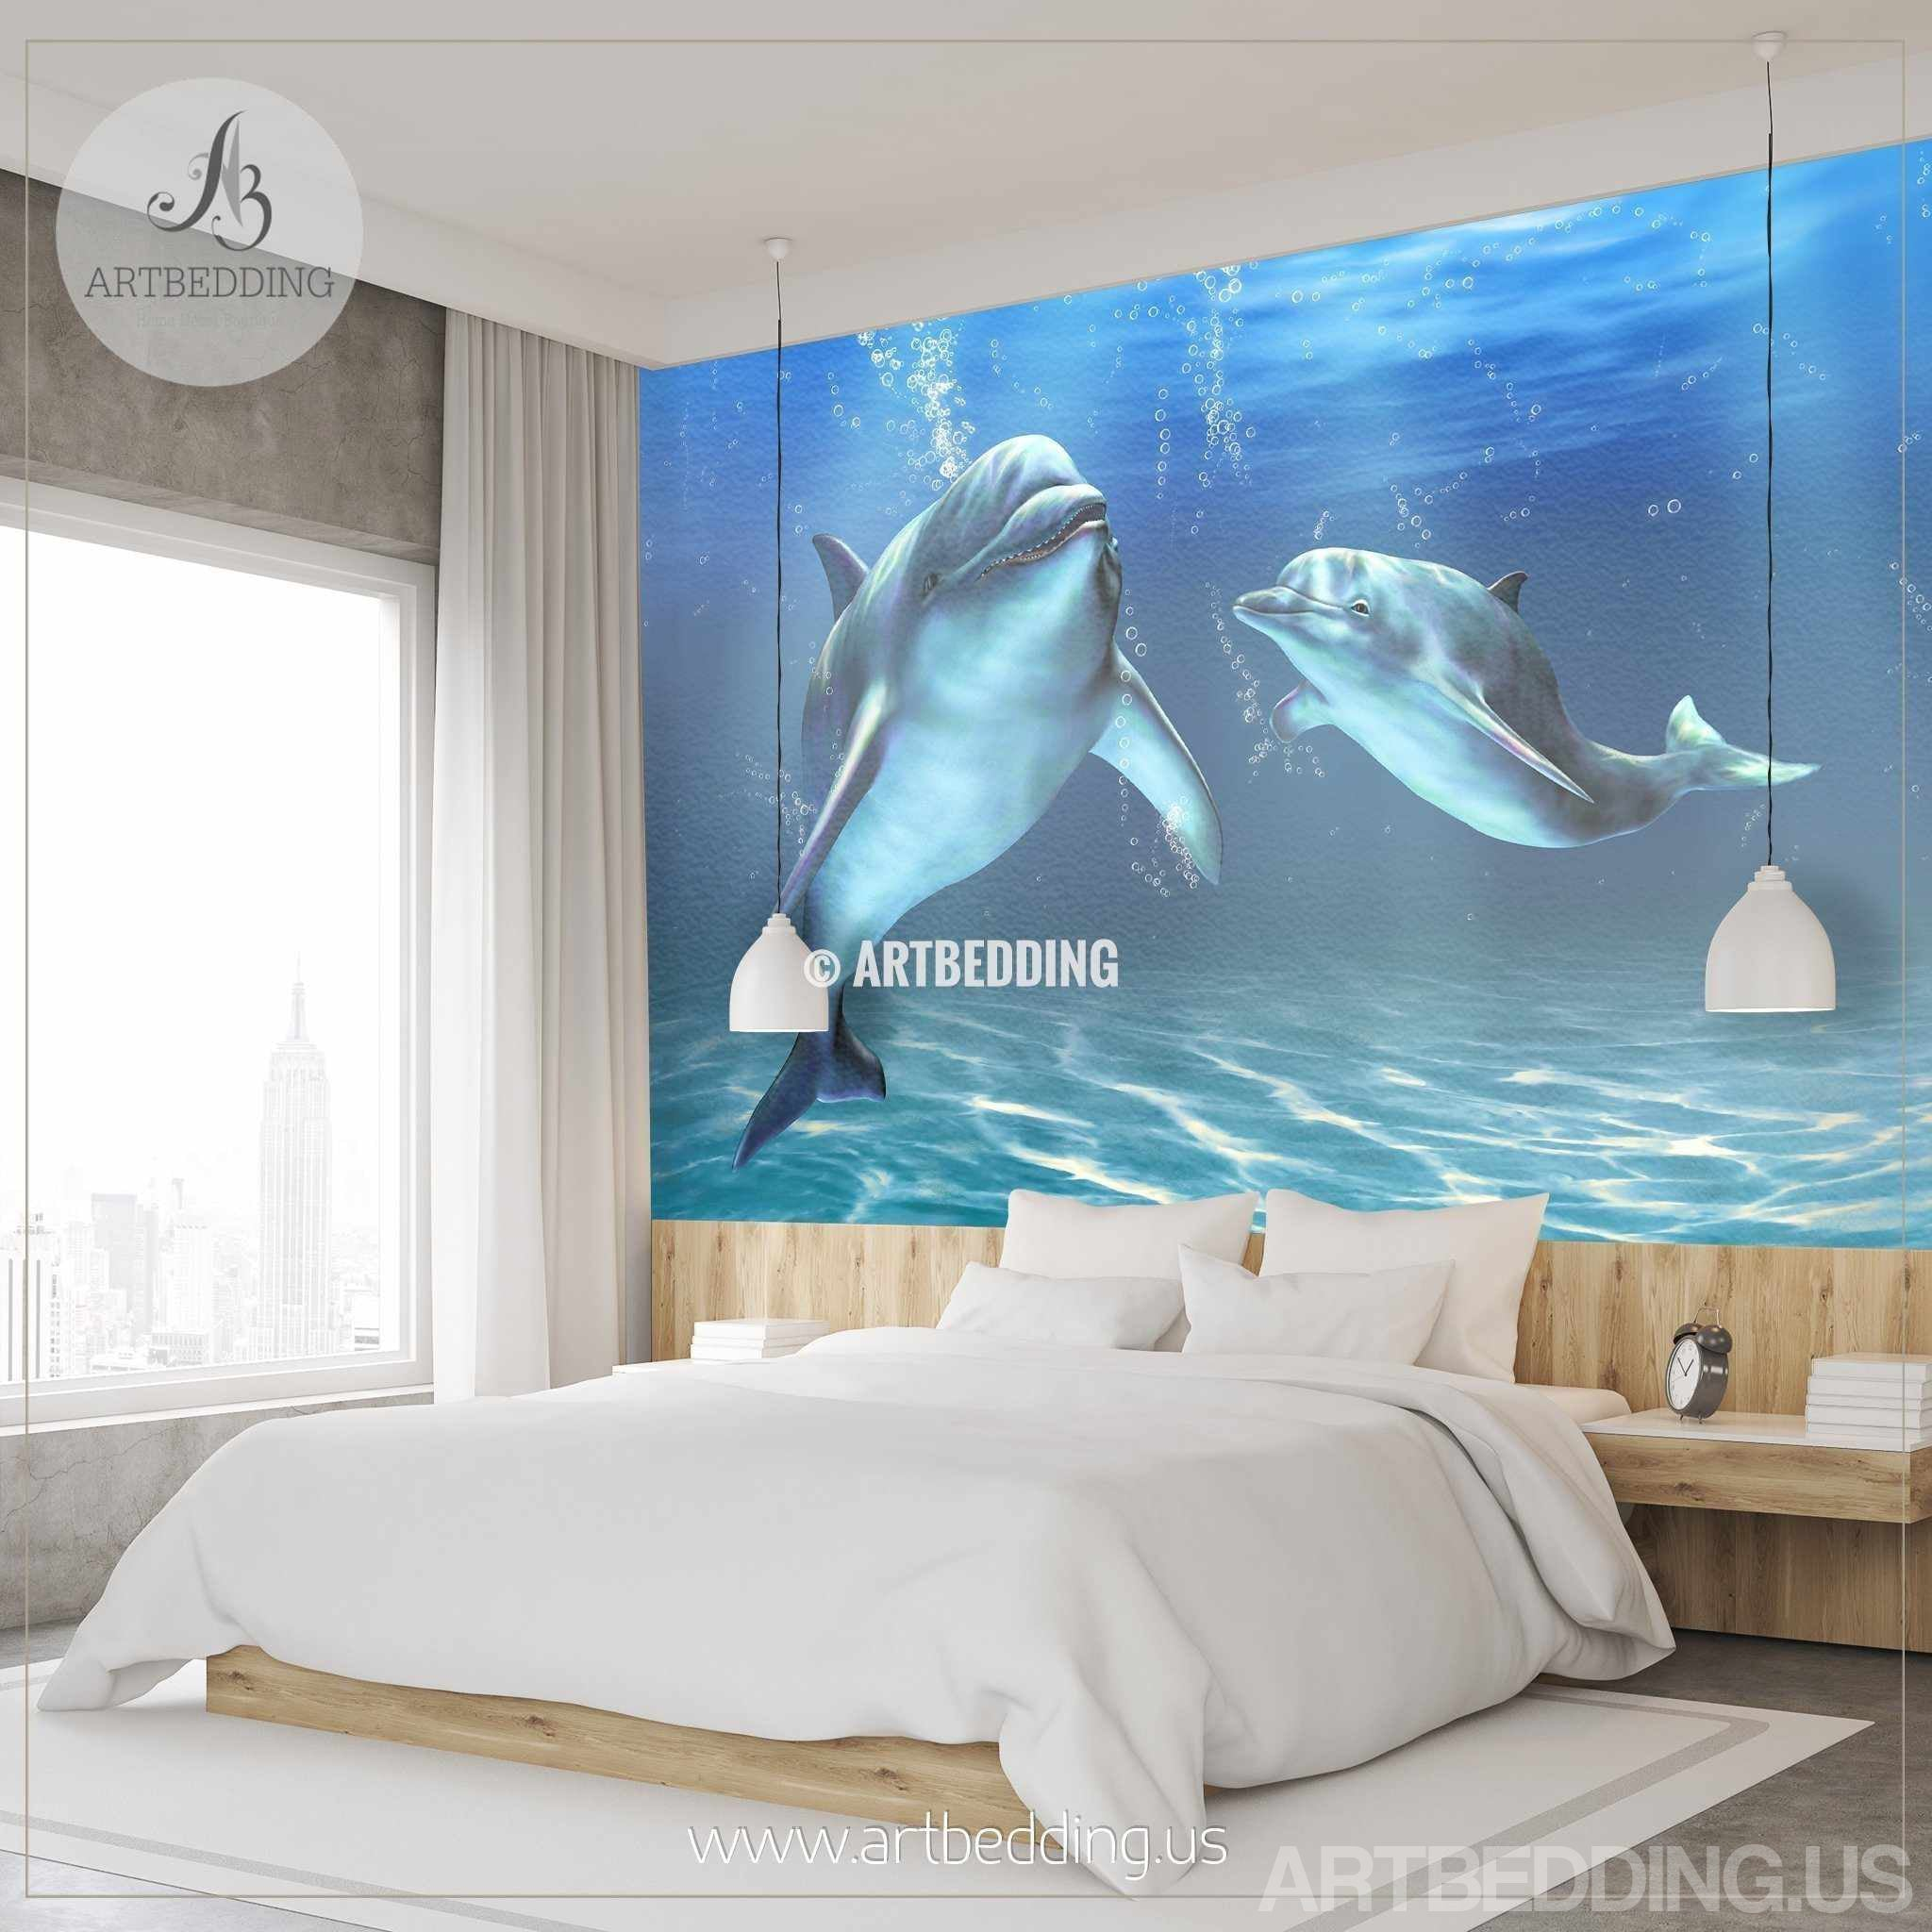 Dolphins wall mural dolphins self adhesive peel stick photo dolphins wall mural dolphins self adhesive peel stick photo mural dolphins wallpaper wall amipublicfo Image collections